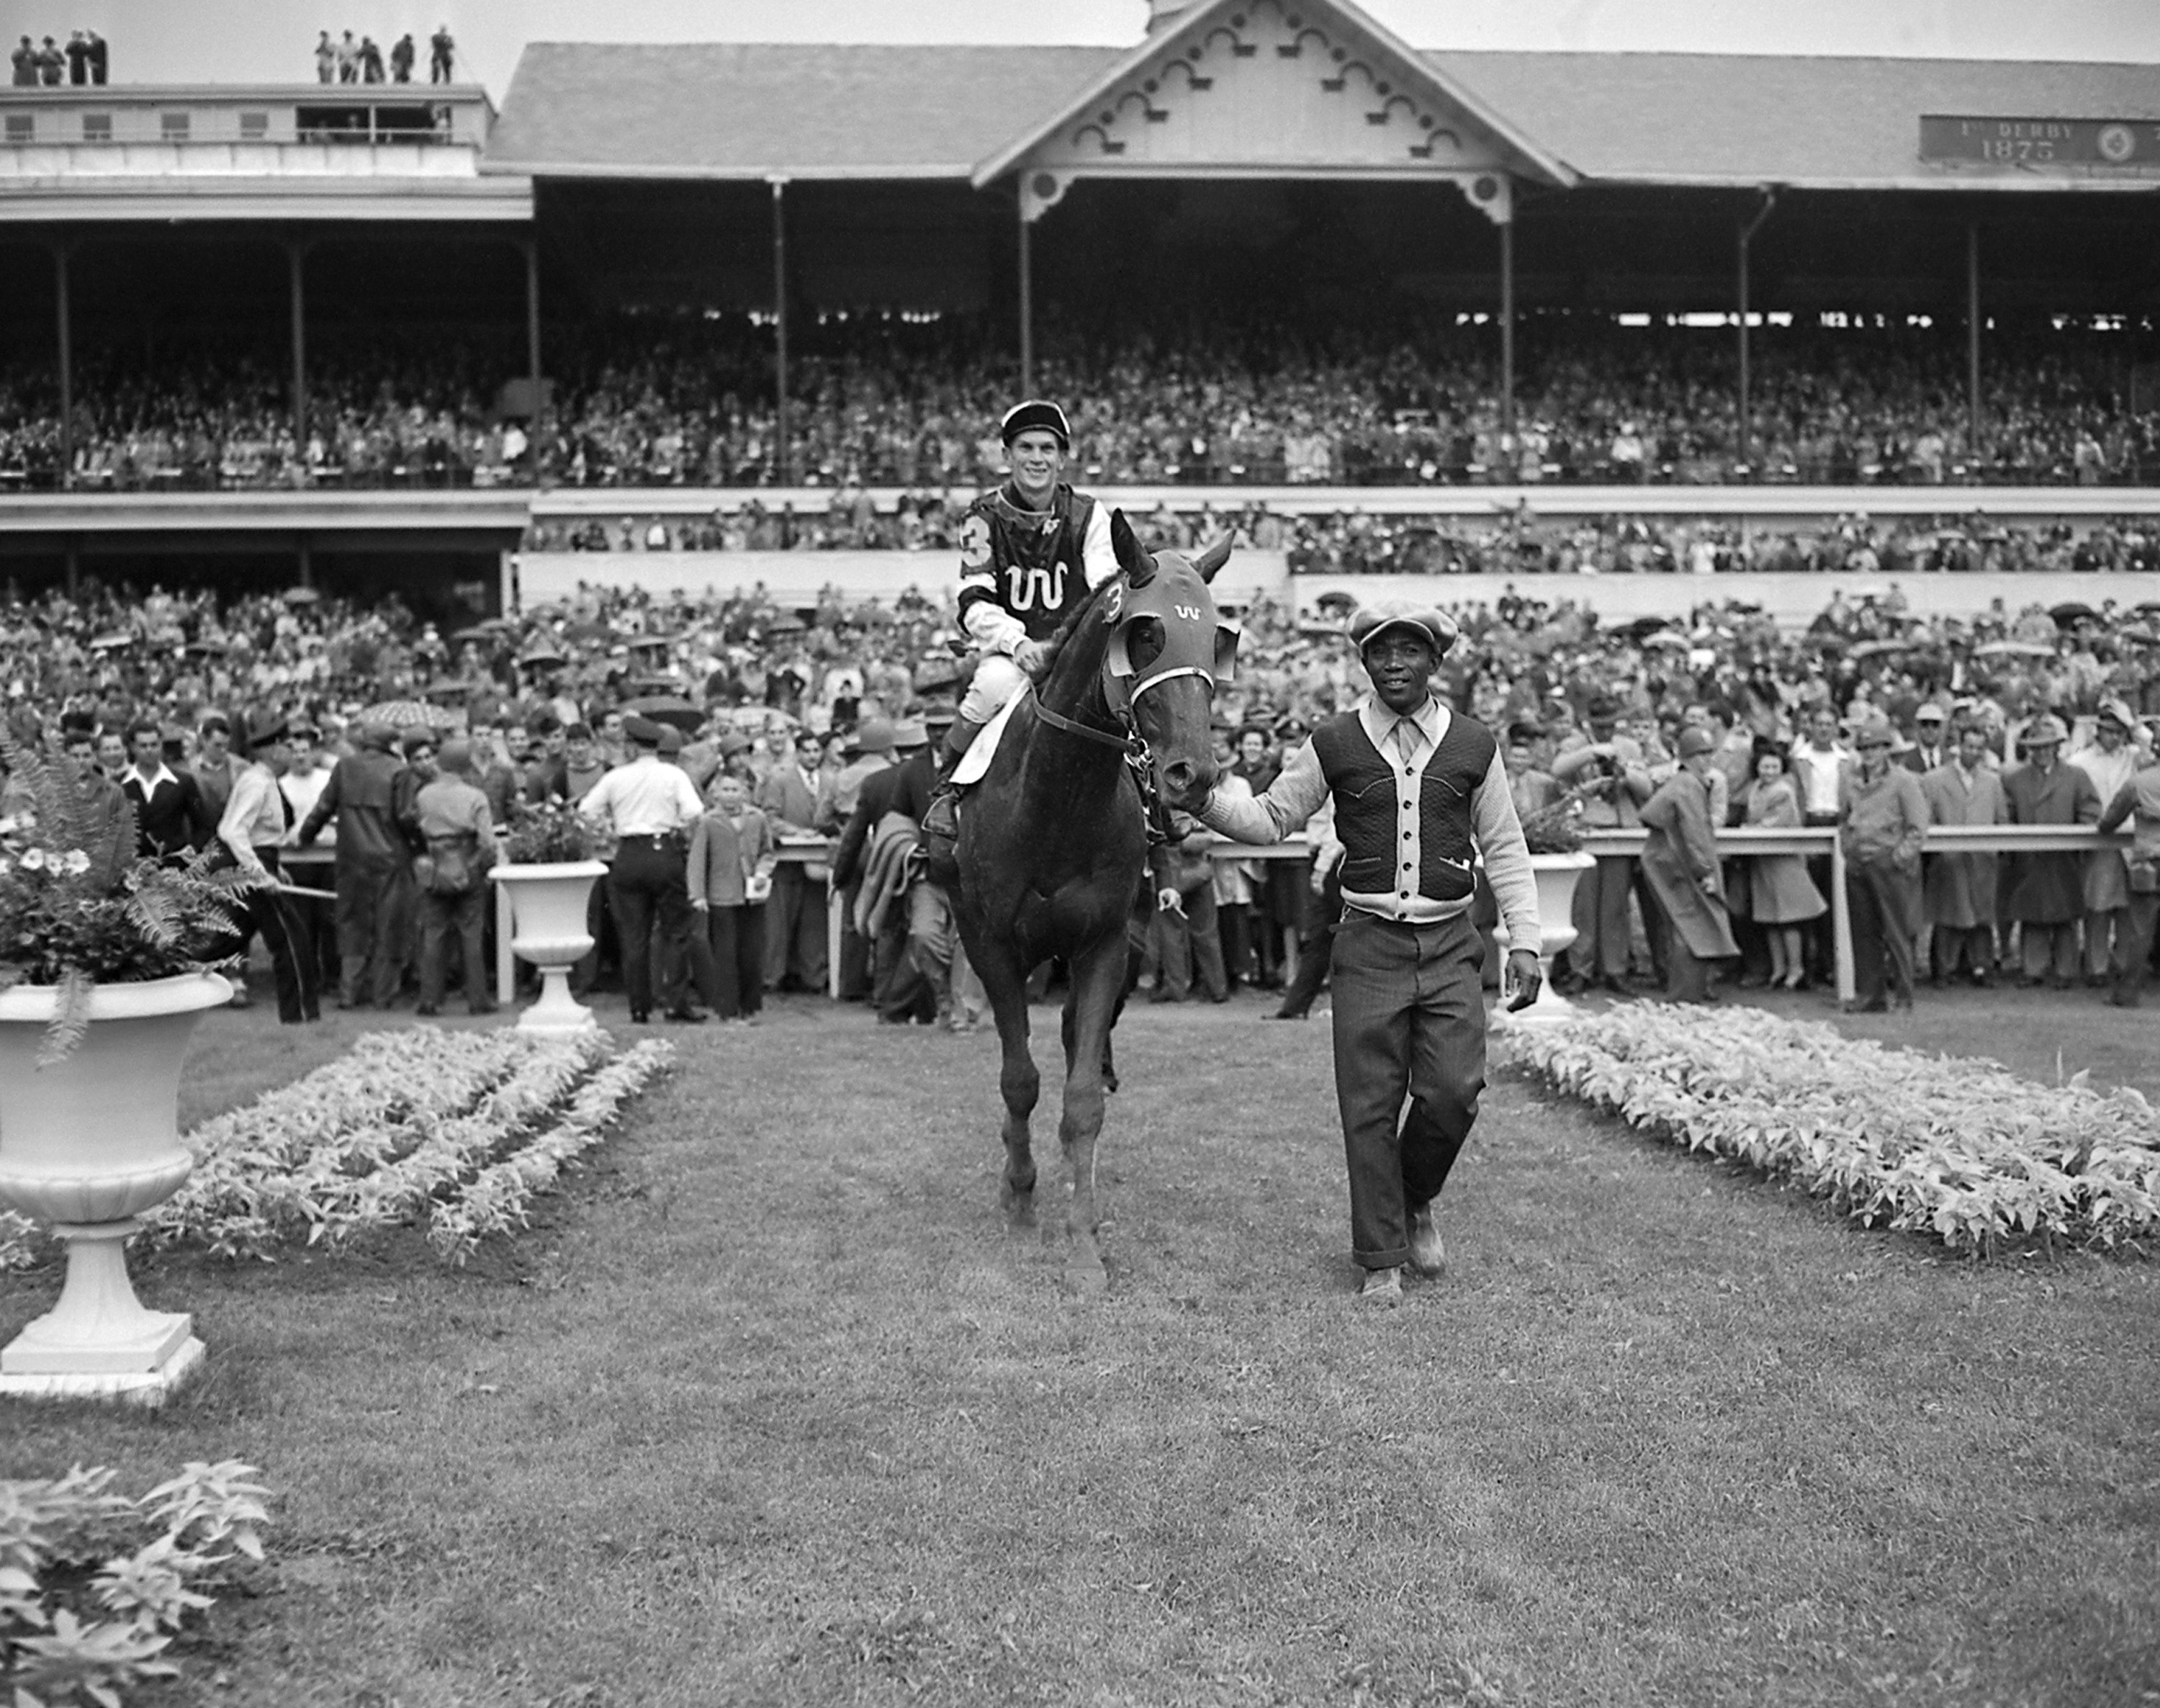 Warren Mehrtens on Assault entering the Kentucky Derby winner's circle